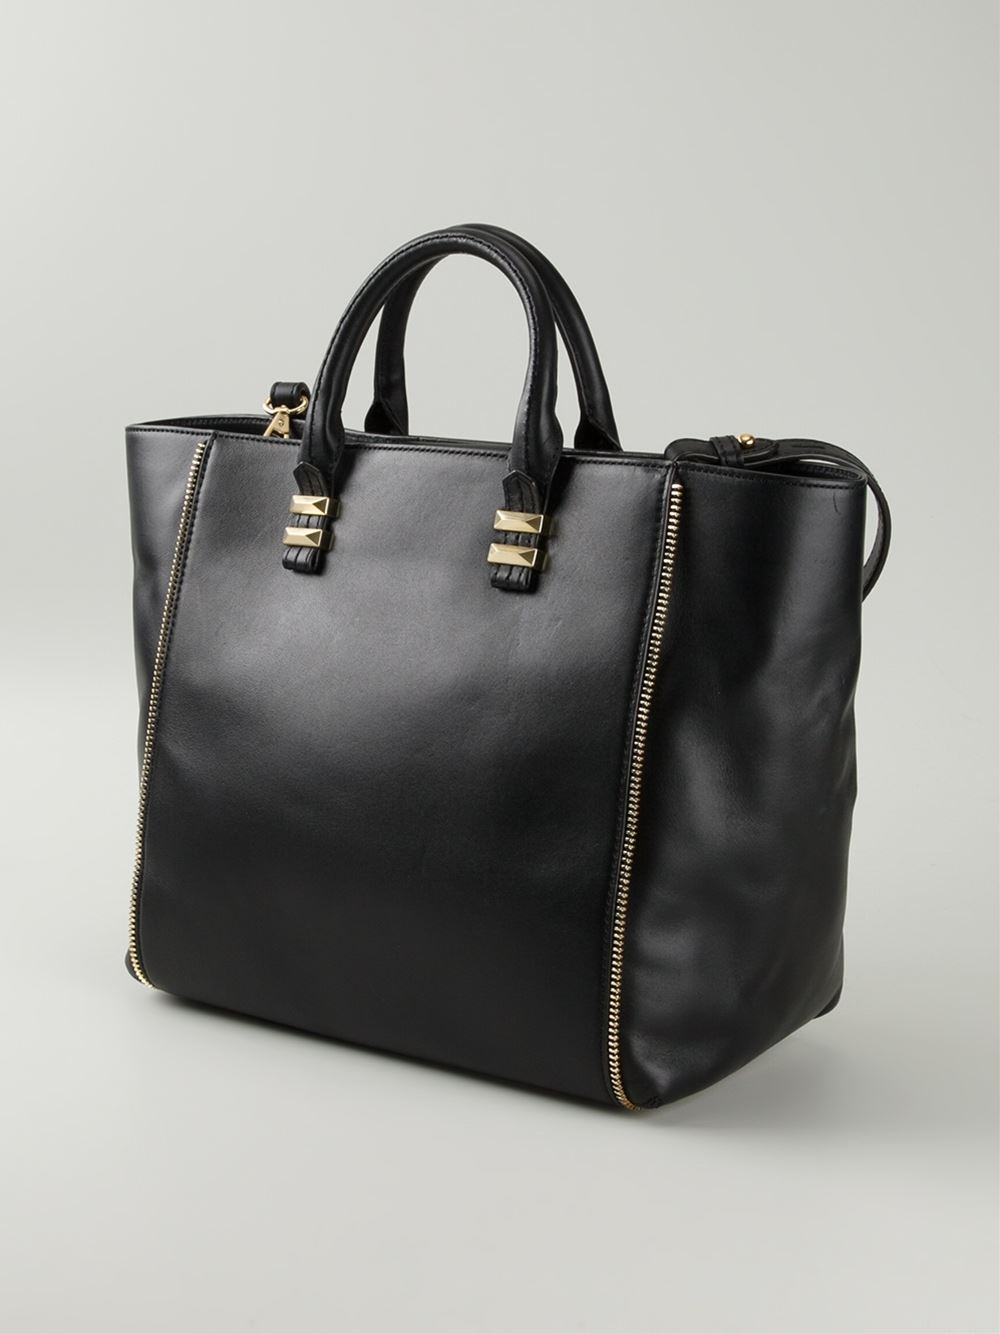 zip detail tote - Black Diesel Cheap Sale Best Place Shopping Online Footlocker Finishline Clearance Fashionable Official Online cG0Cn7R1